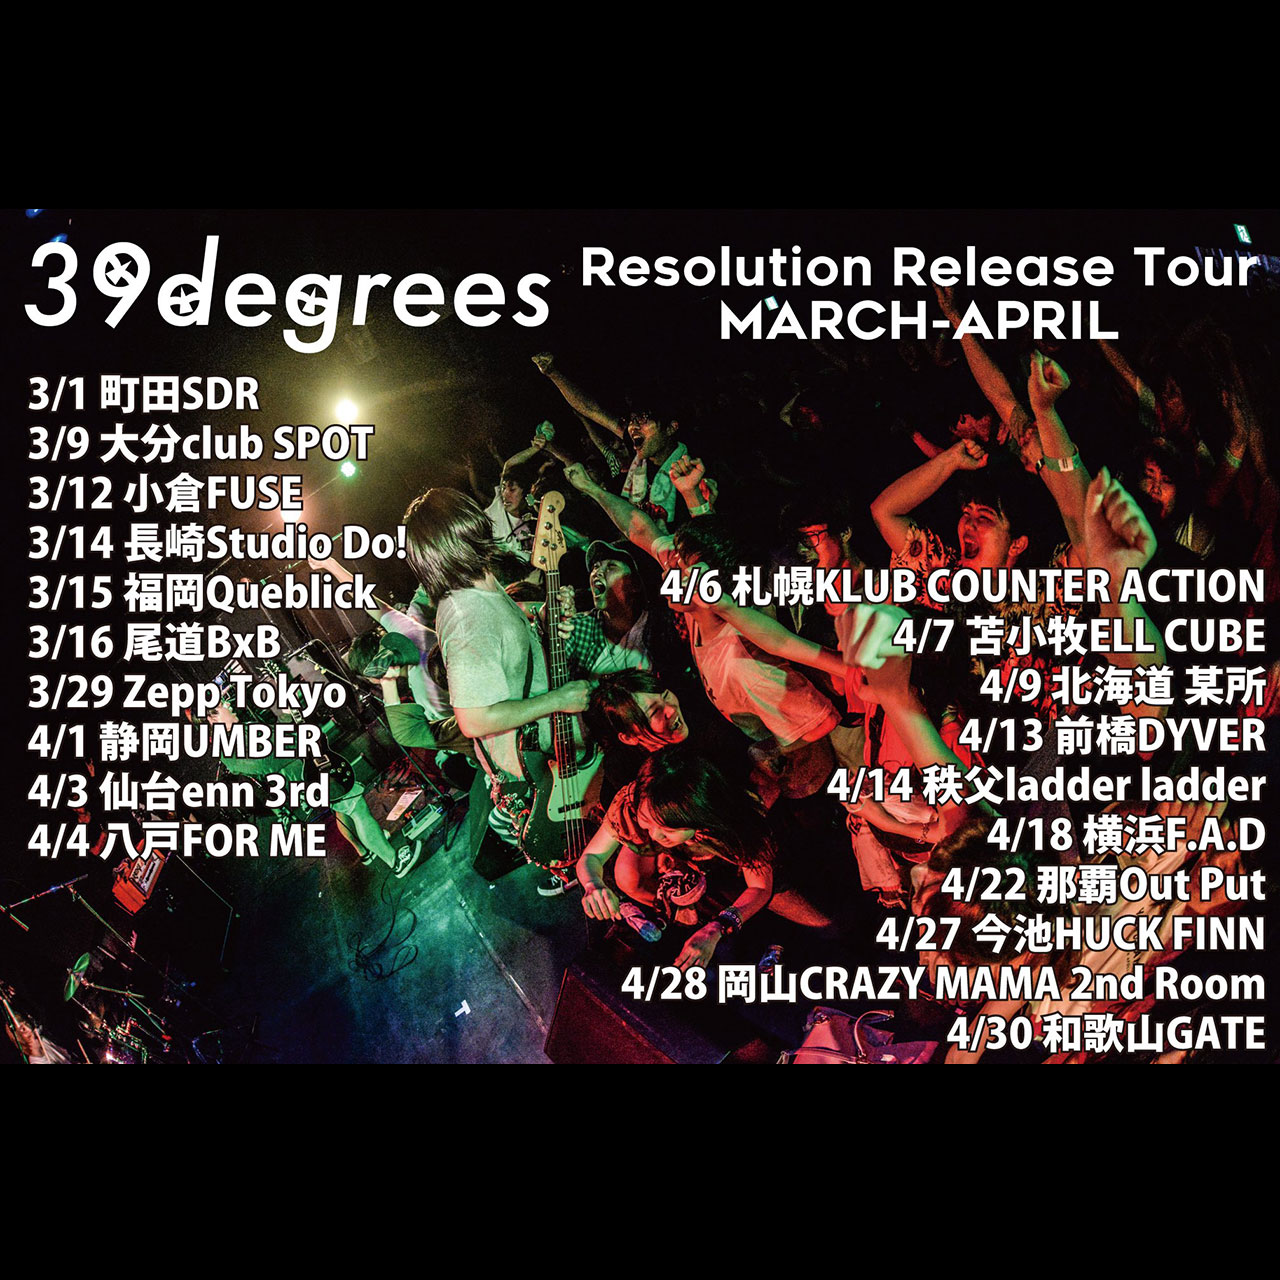 39degrees presents 'Resolution' Release Tour